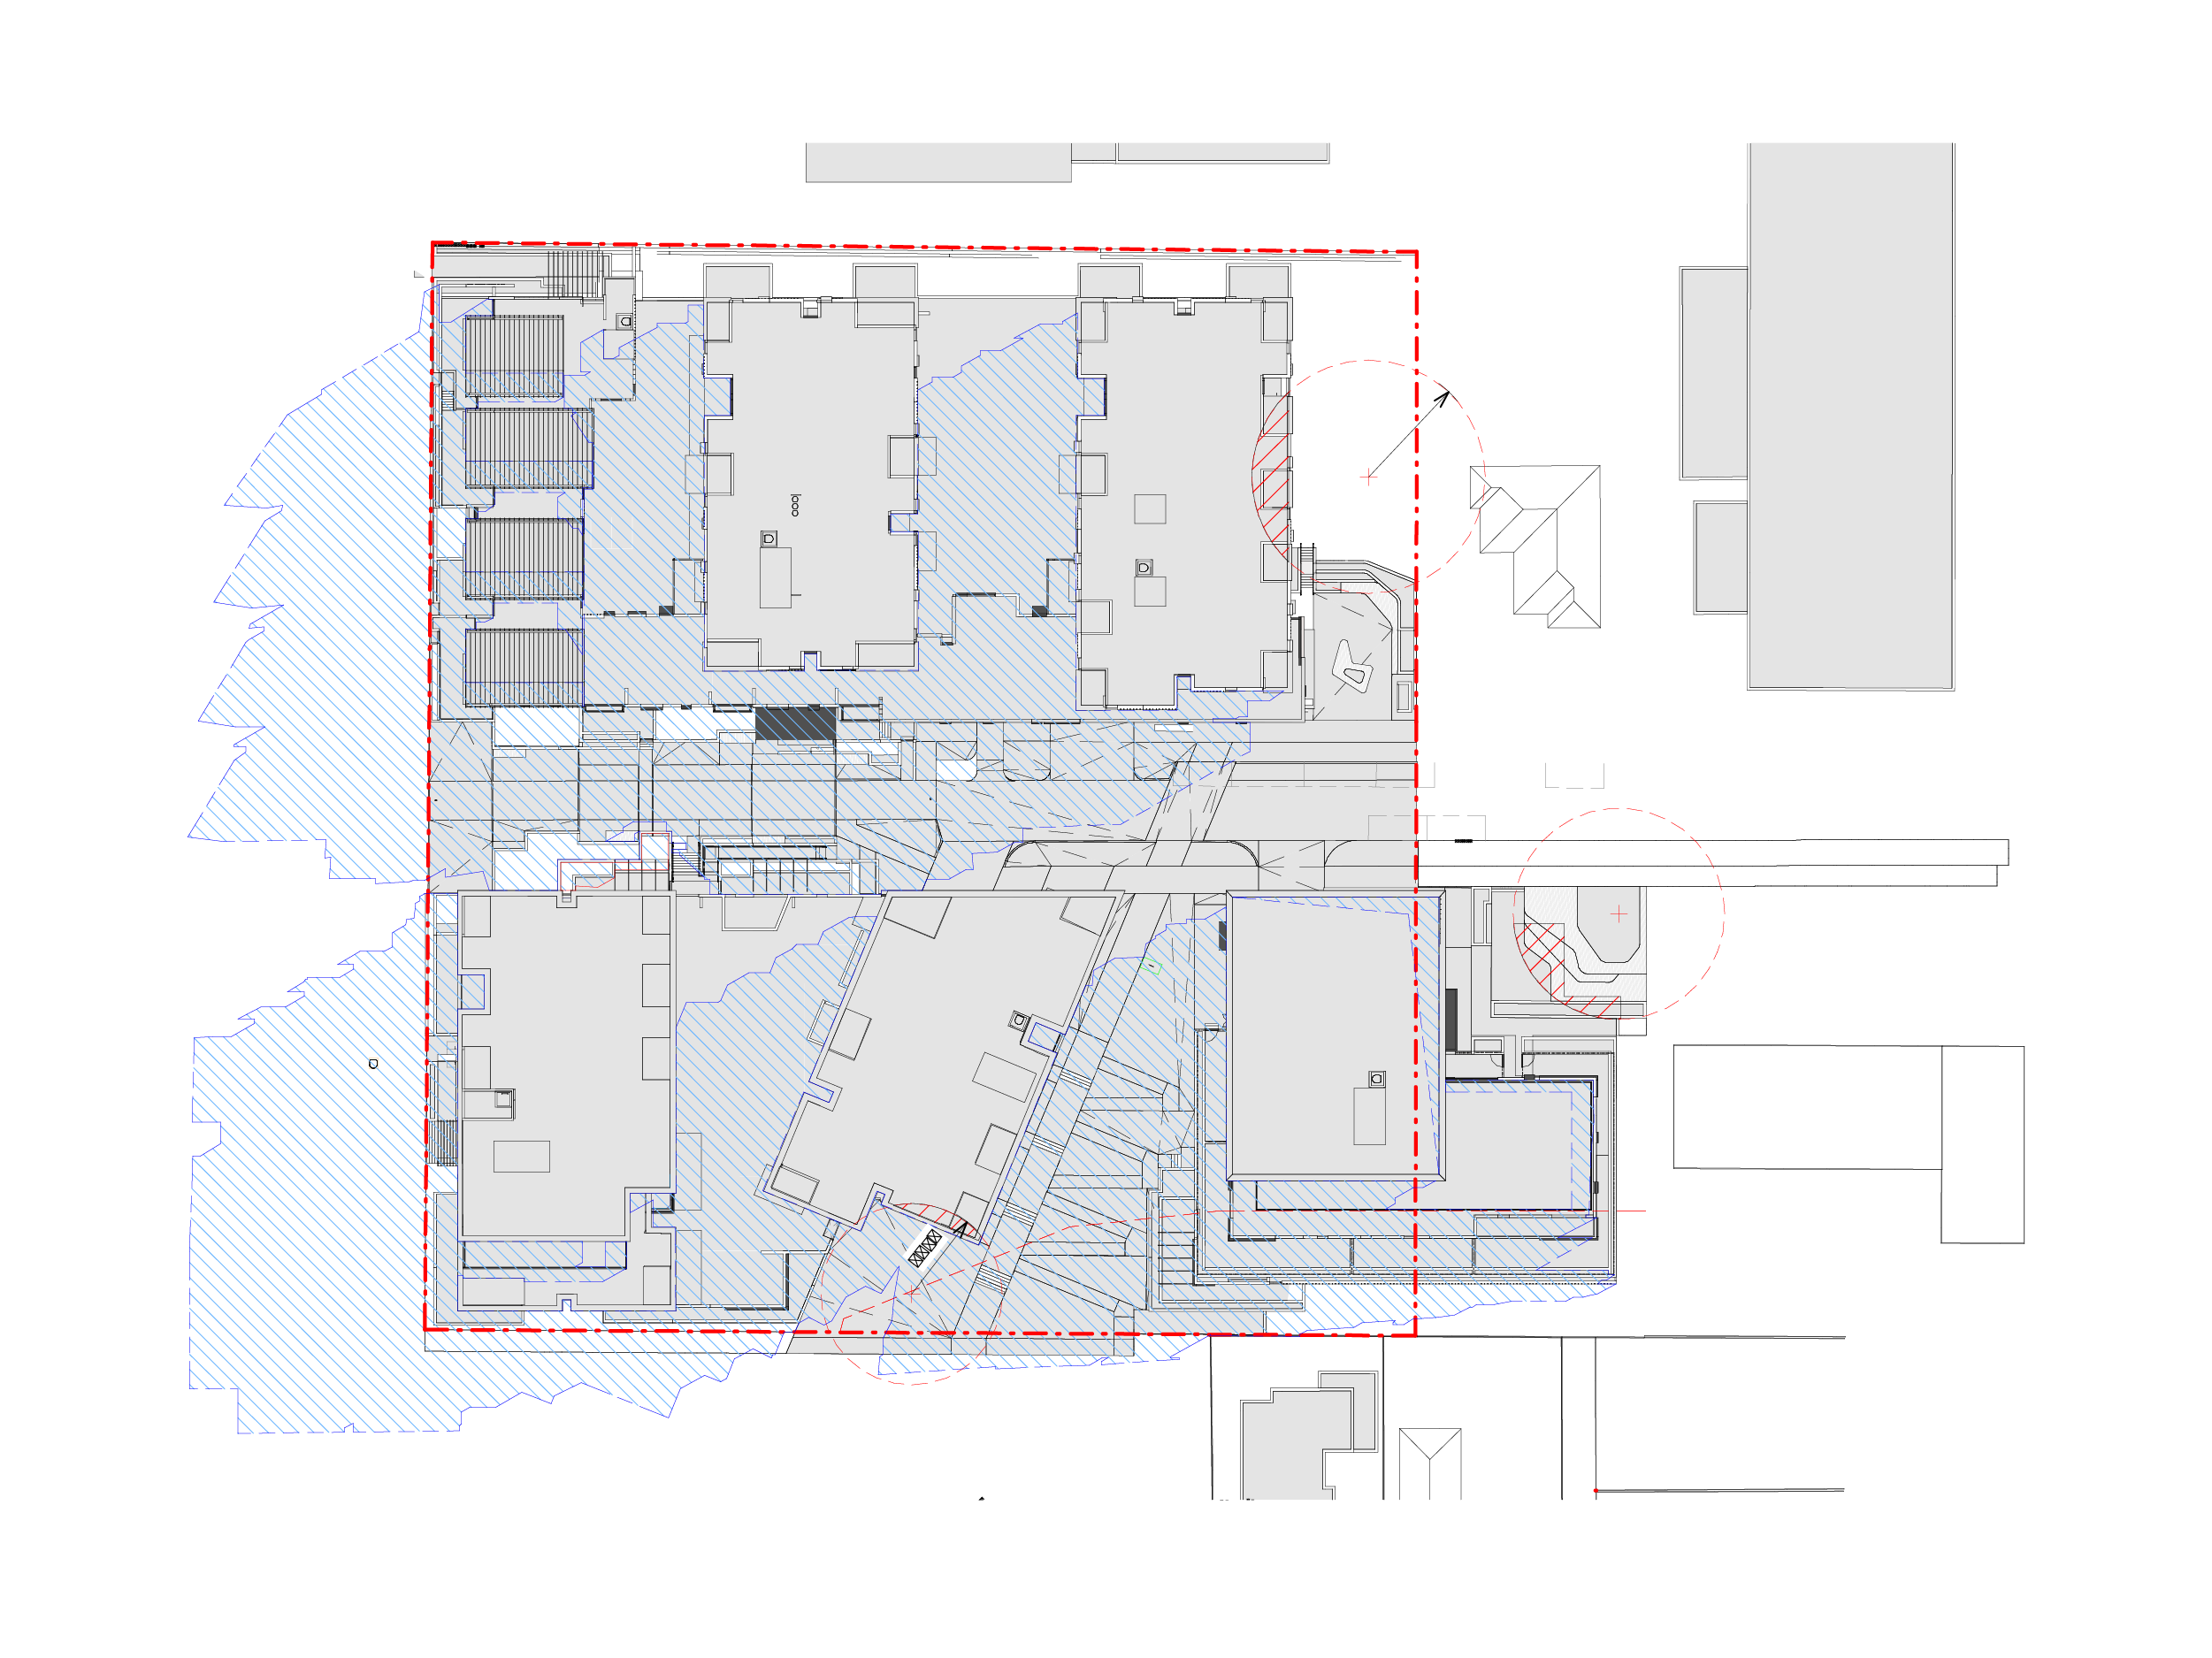 Diagram showing the shadows created by the new Bills Street development on 22 September at 9am